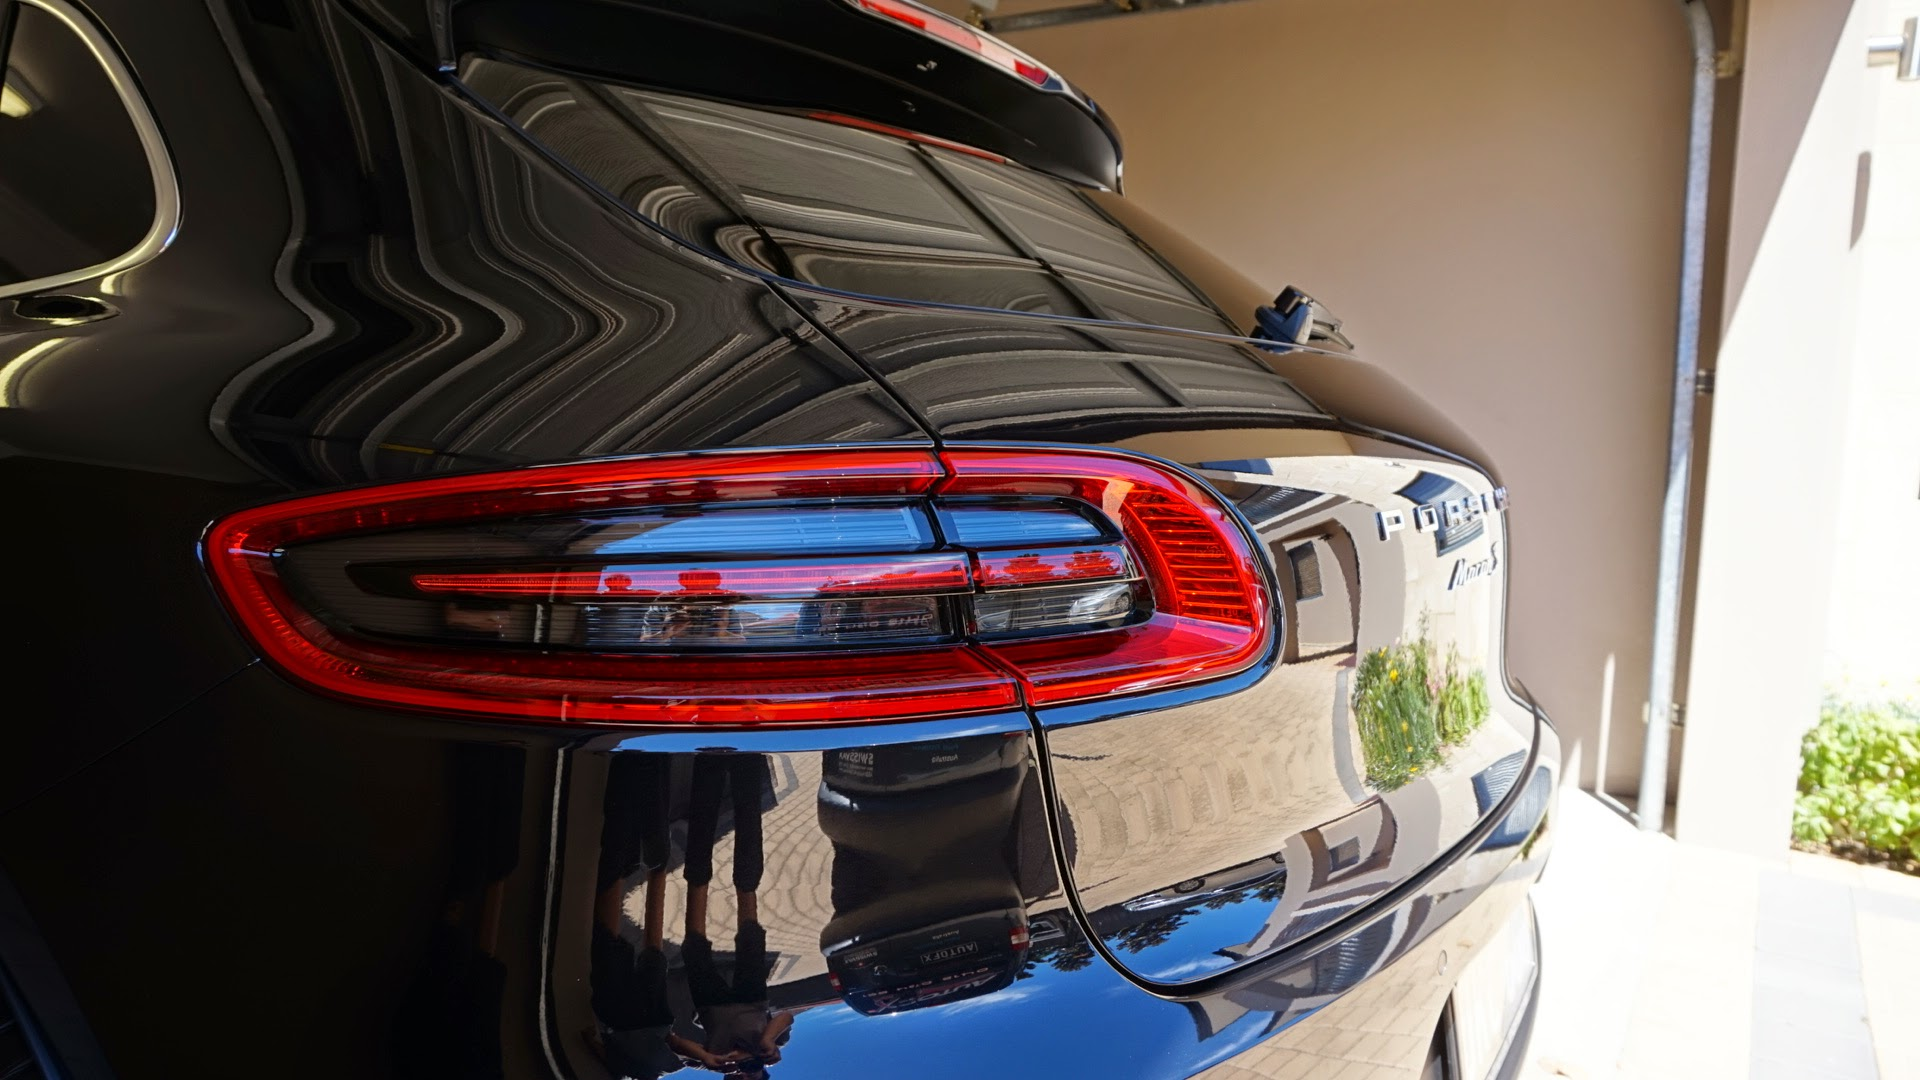 aint Protection – Porsche Macan